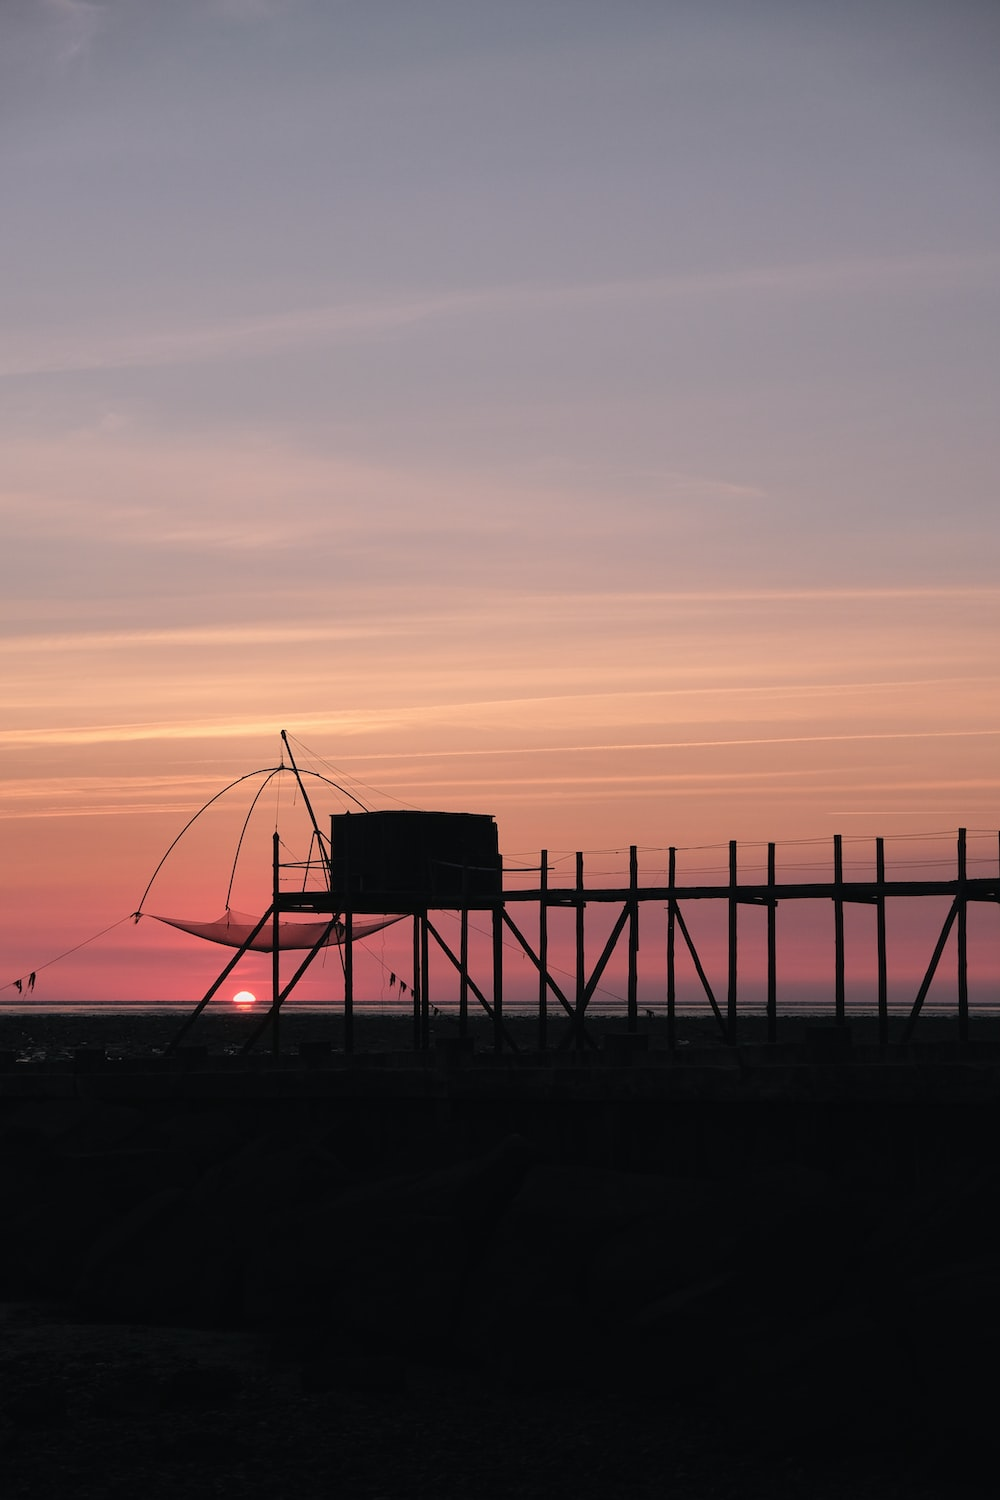 silhouette of lifeguard tower during sunset